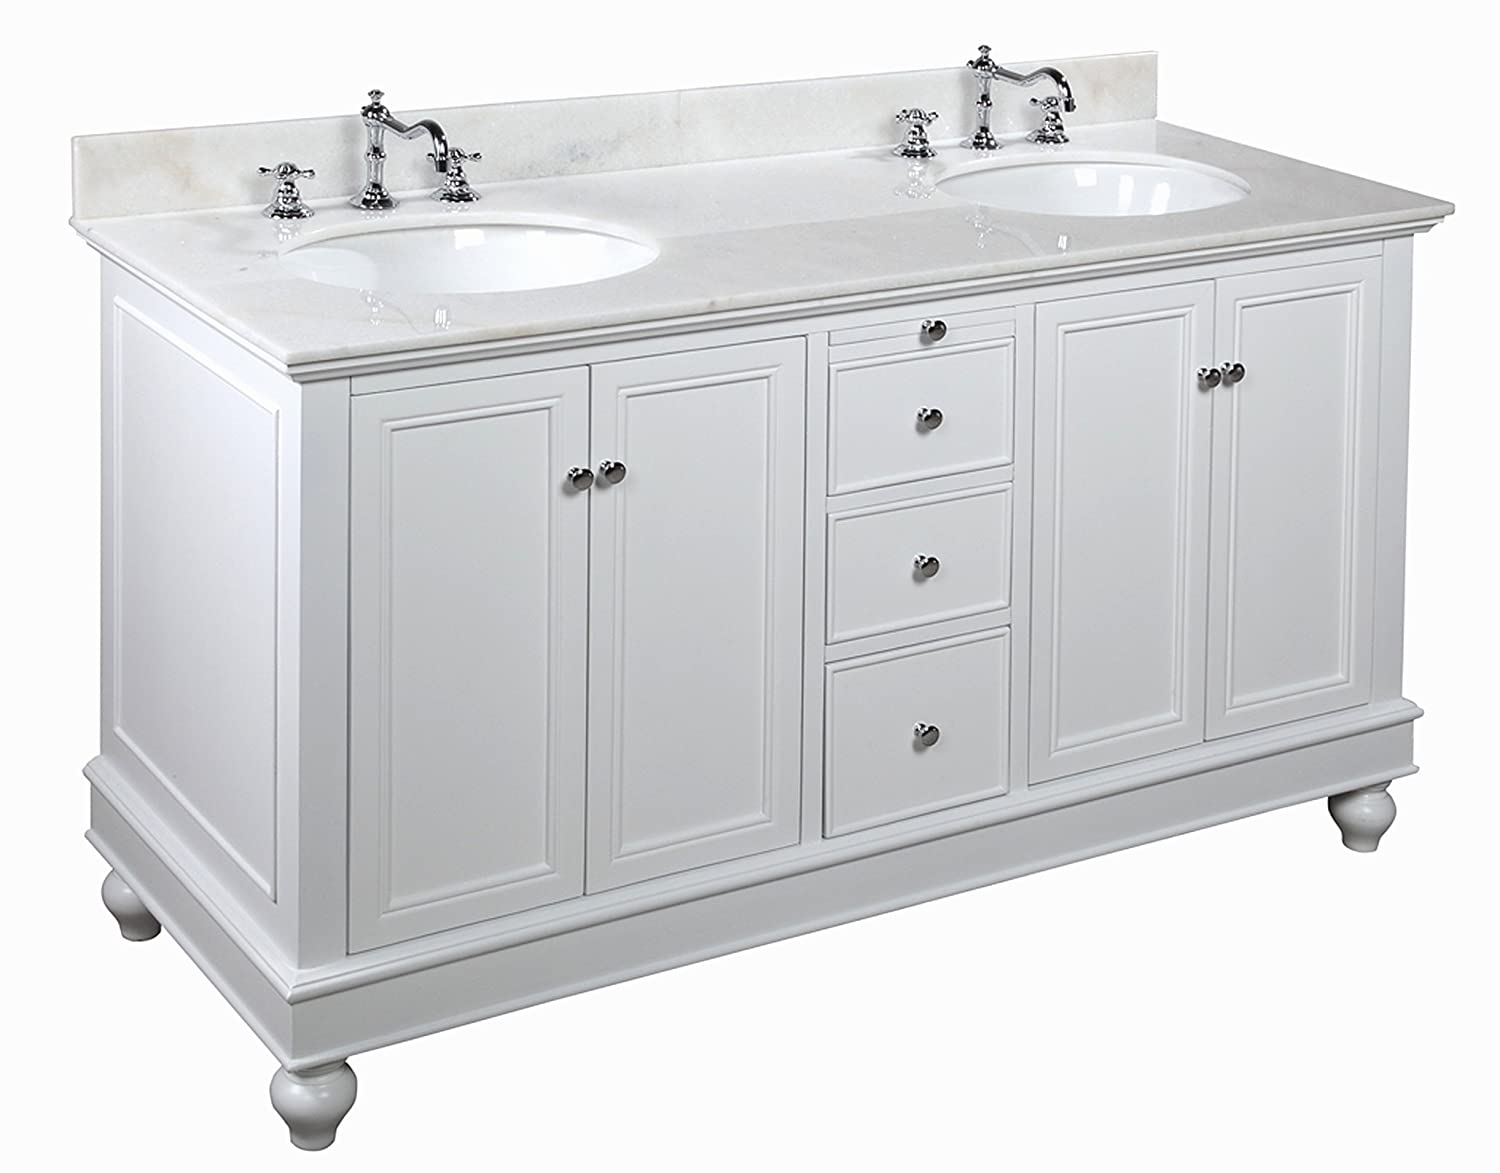 Low Cost Kitchen Bath Collection Kbc222wtwt Bella Double Sink Bathroom Vanity With Marble